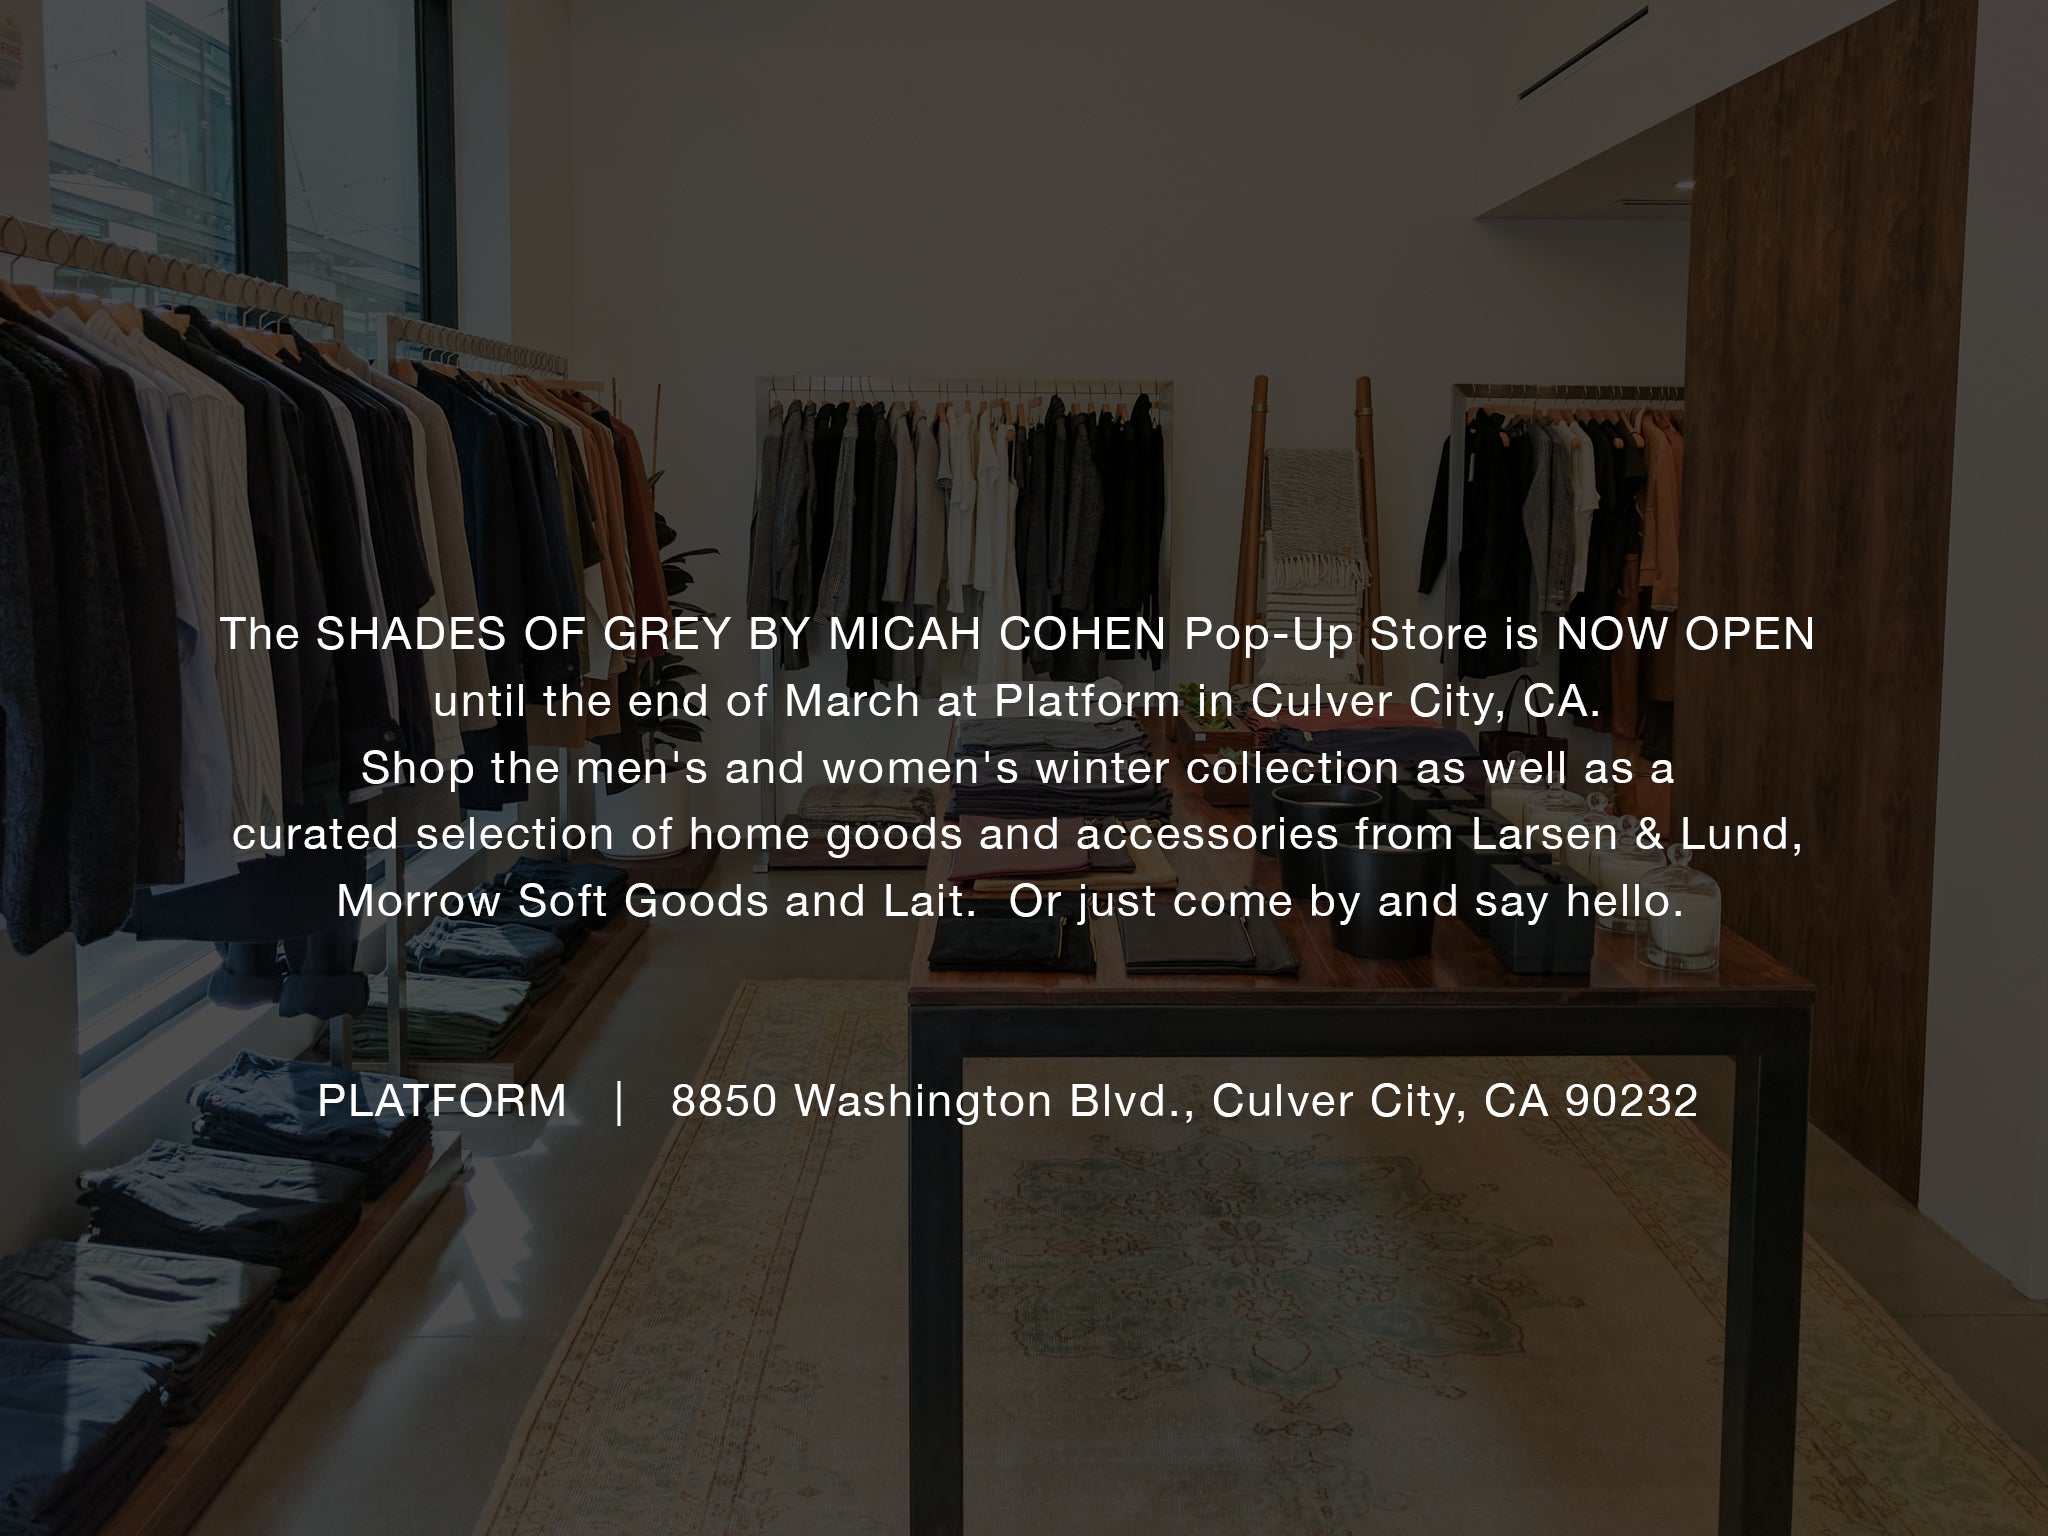 Shades of Grey by Micah Cohen Pop-Up Store at Platform Culver City, CA